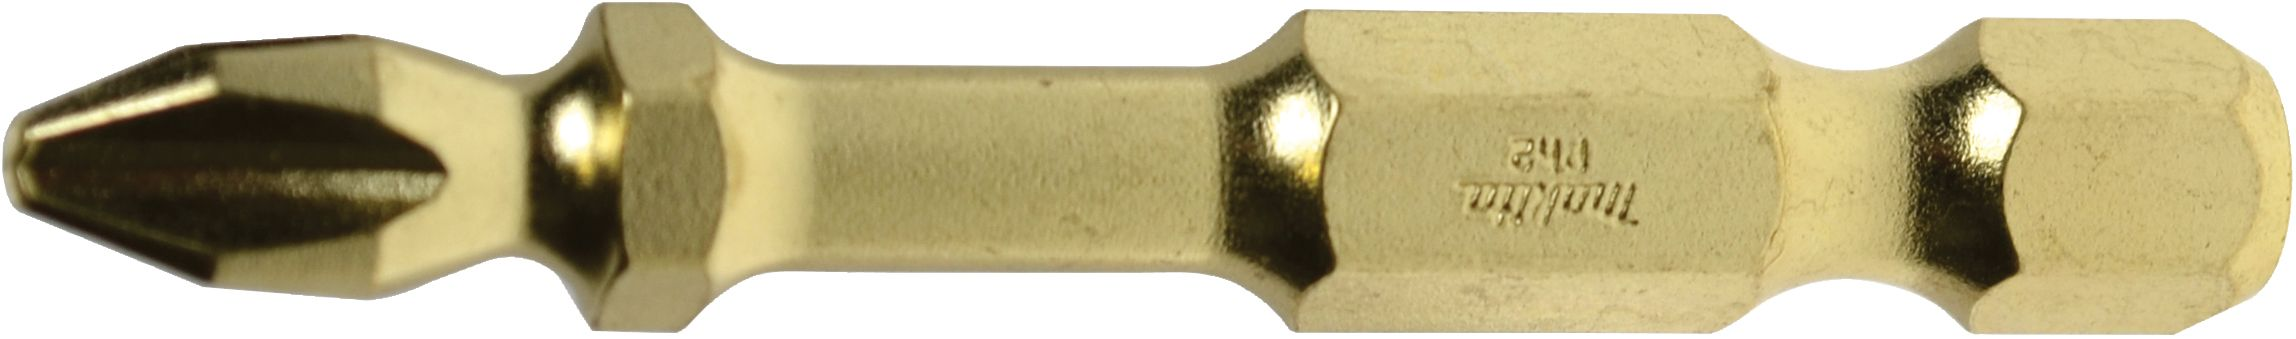 Makita Impact Gold Double Torsion Bit PH2 50mm